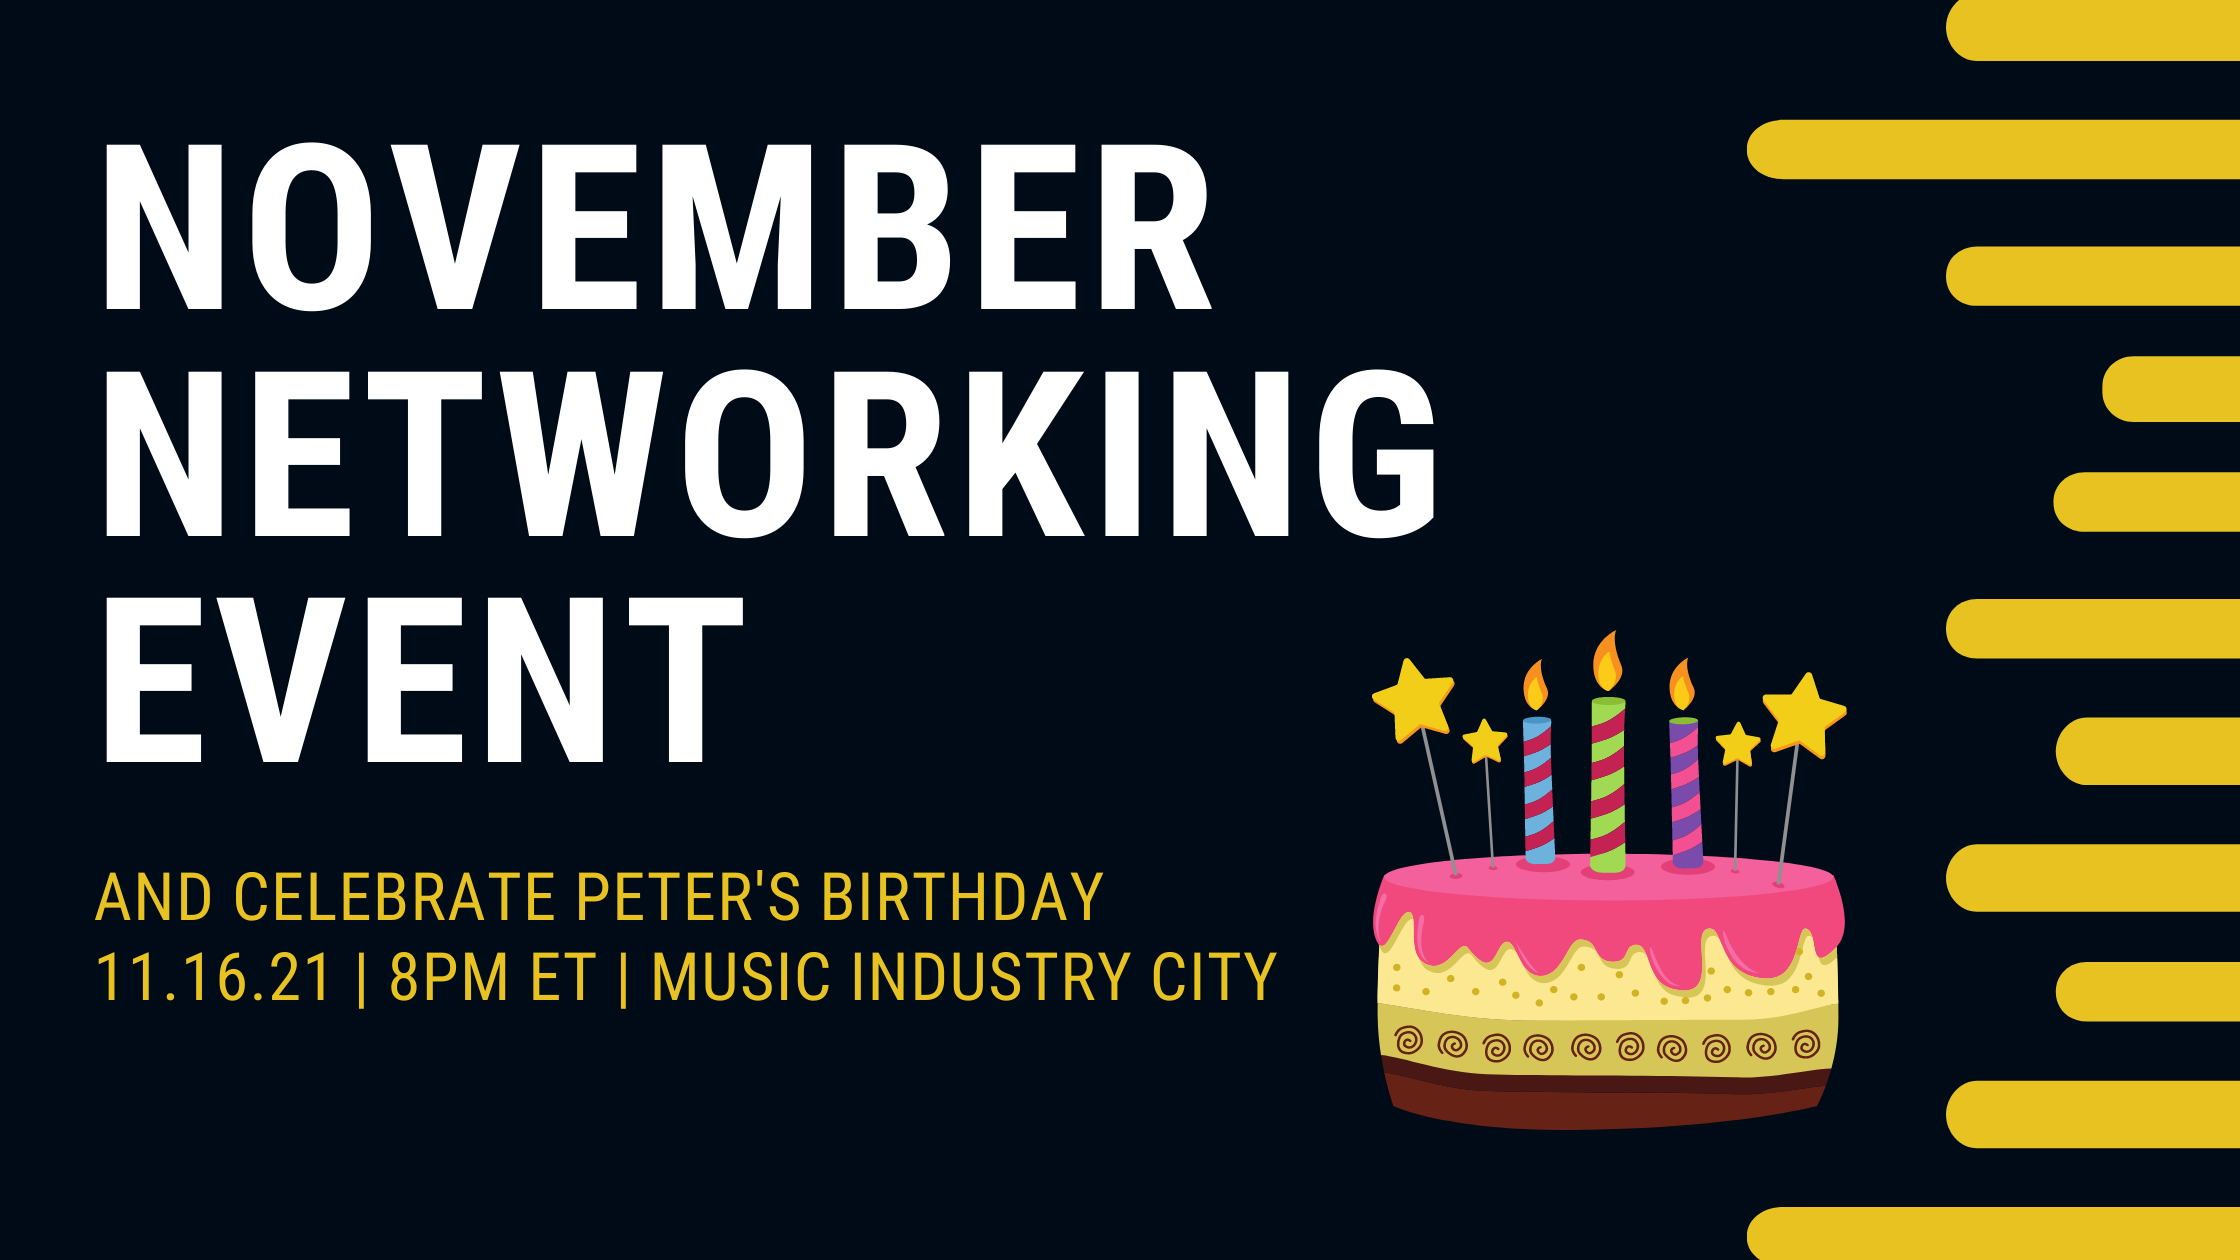 November Networking Event